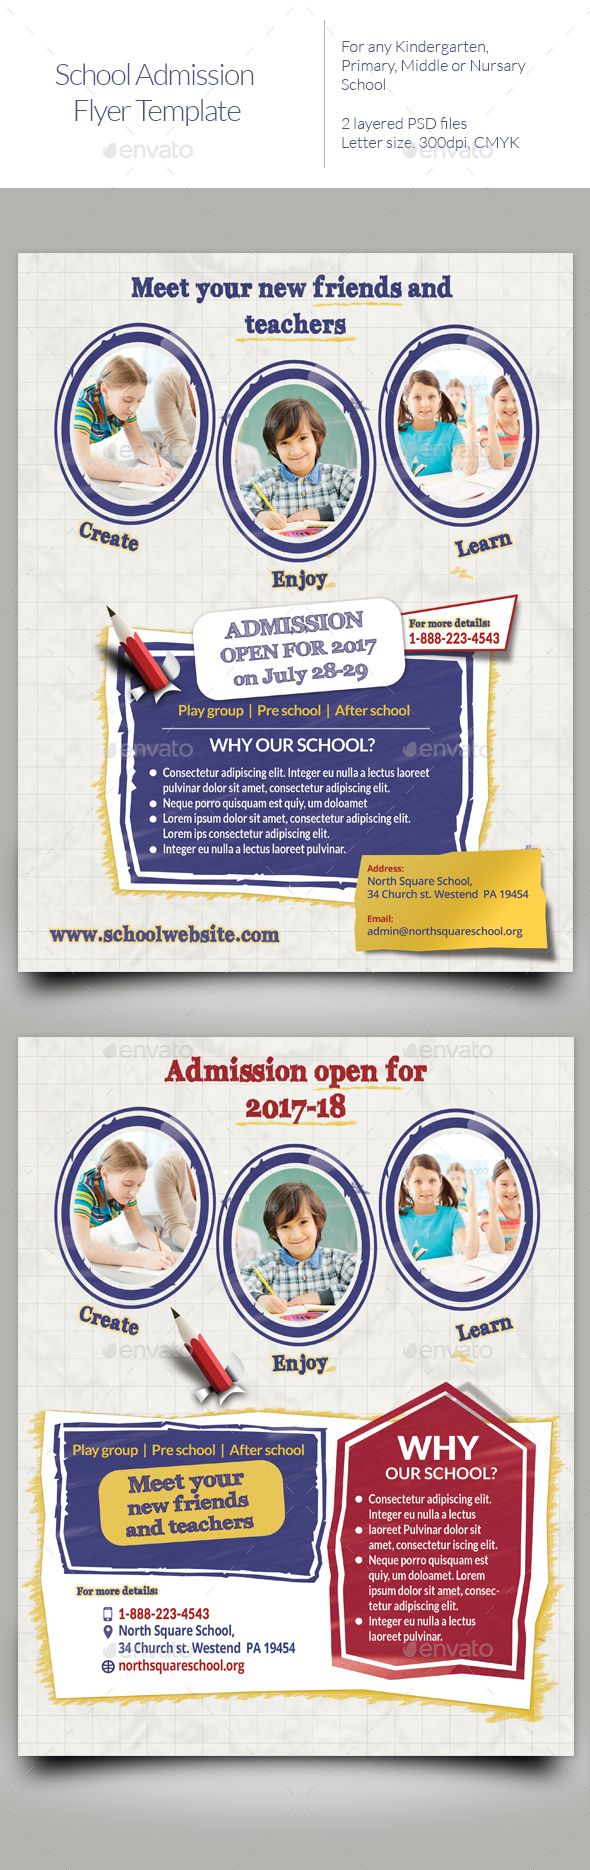 school admission flyer templates flyer template flyers and psd buy school admission flyer templates by geon on graphicriver best photoshop flyer template perfect for kindergarten daycare preschool school that needs